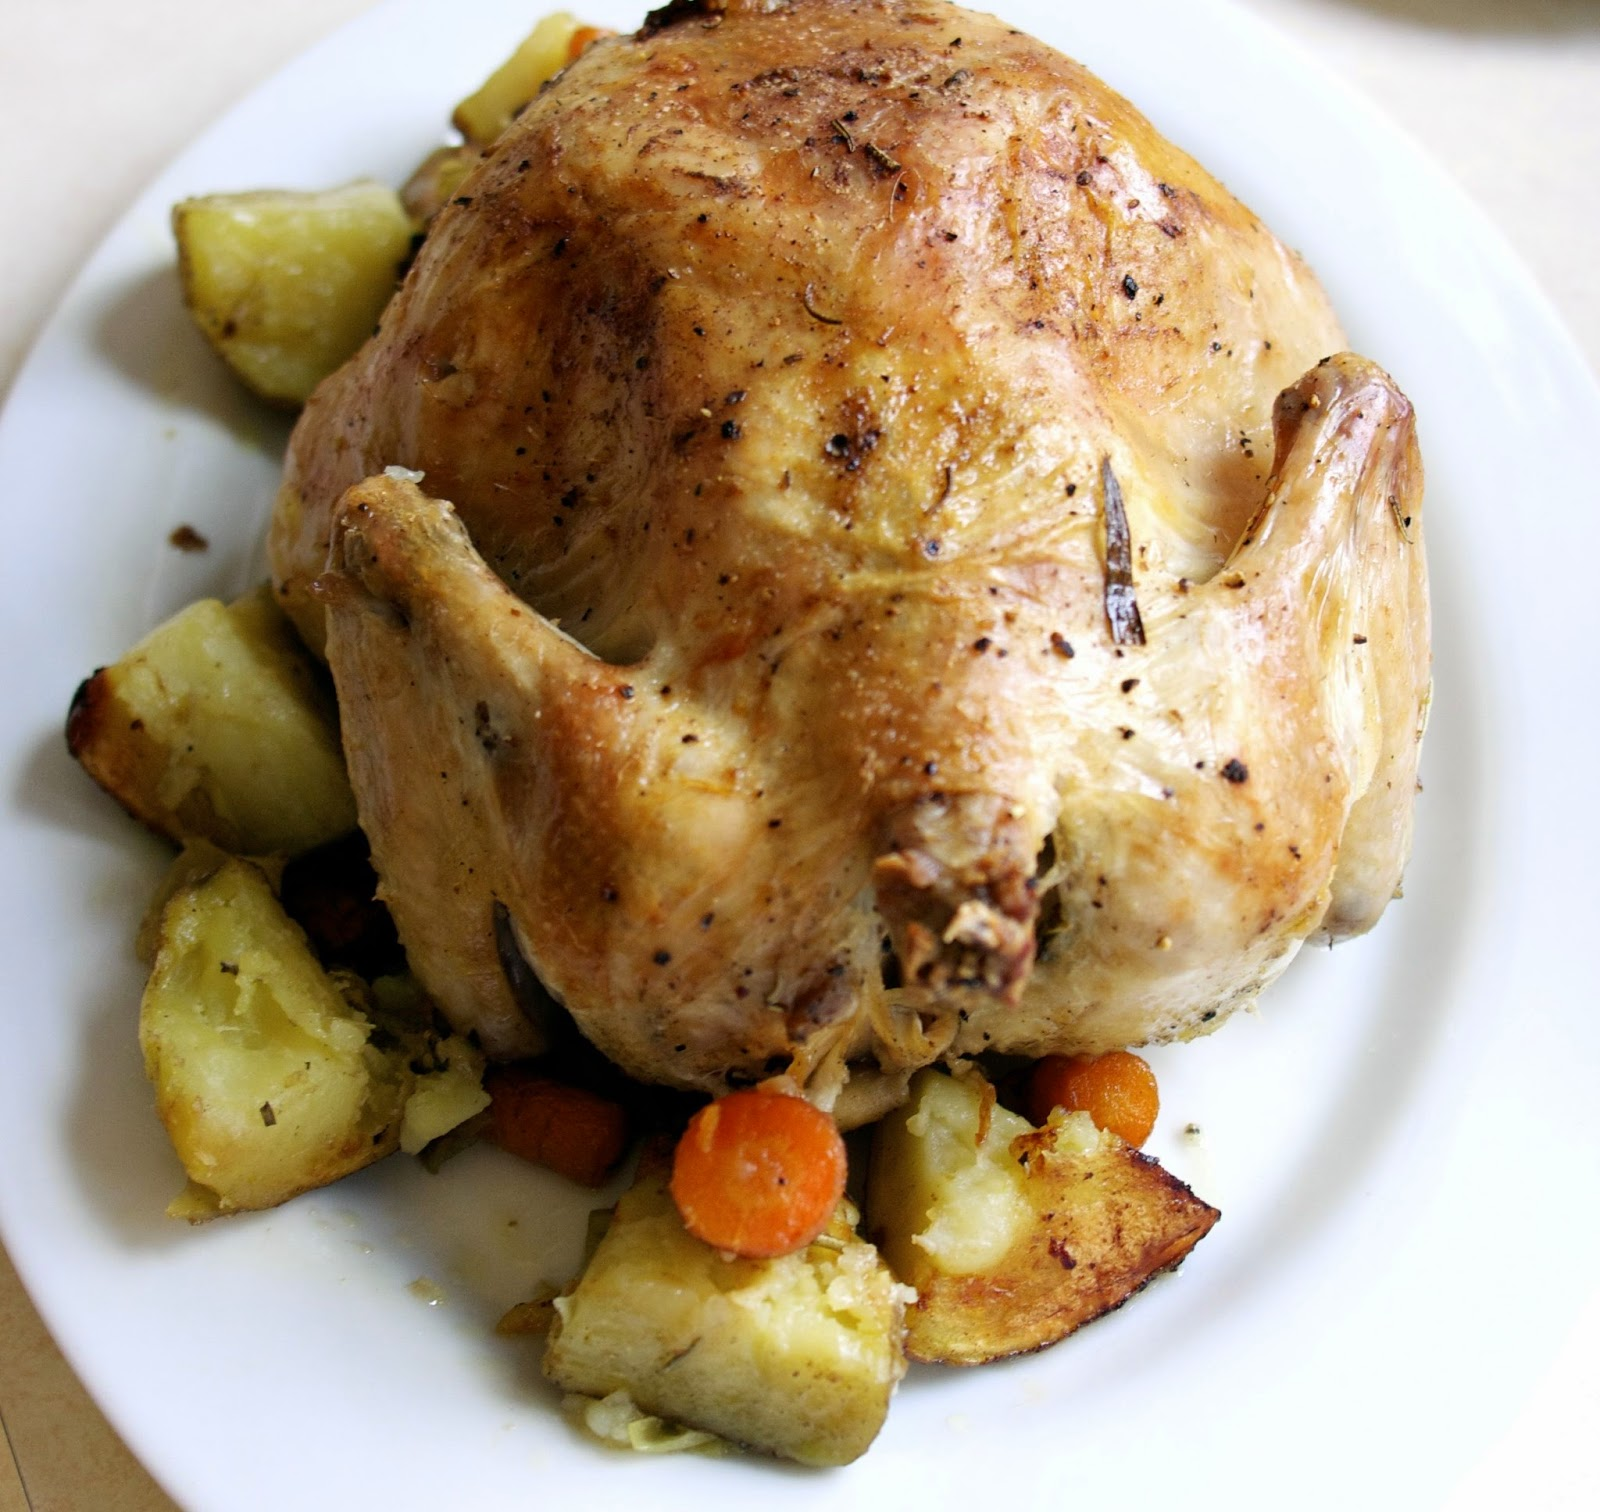 roasted chicken w/ vegetables: simplelivingeating.com